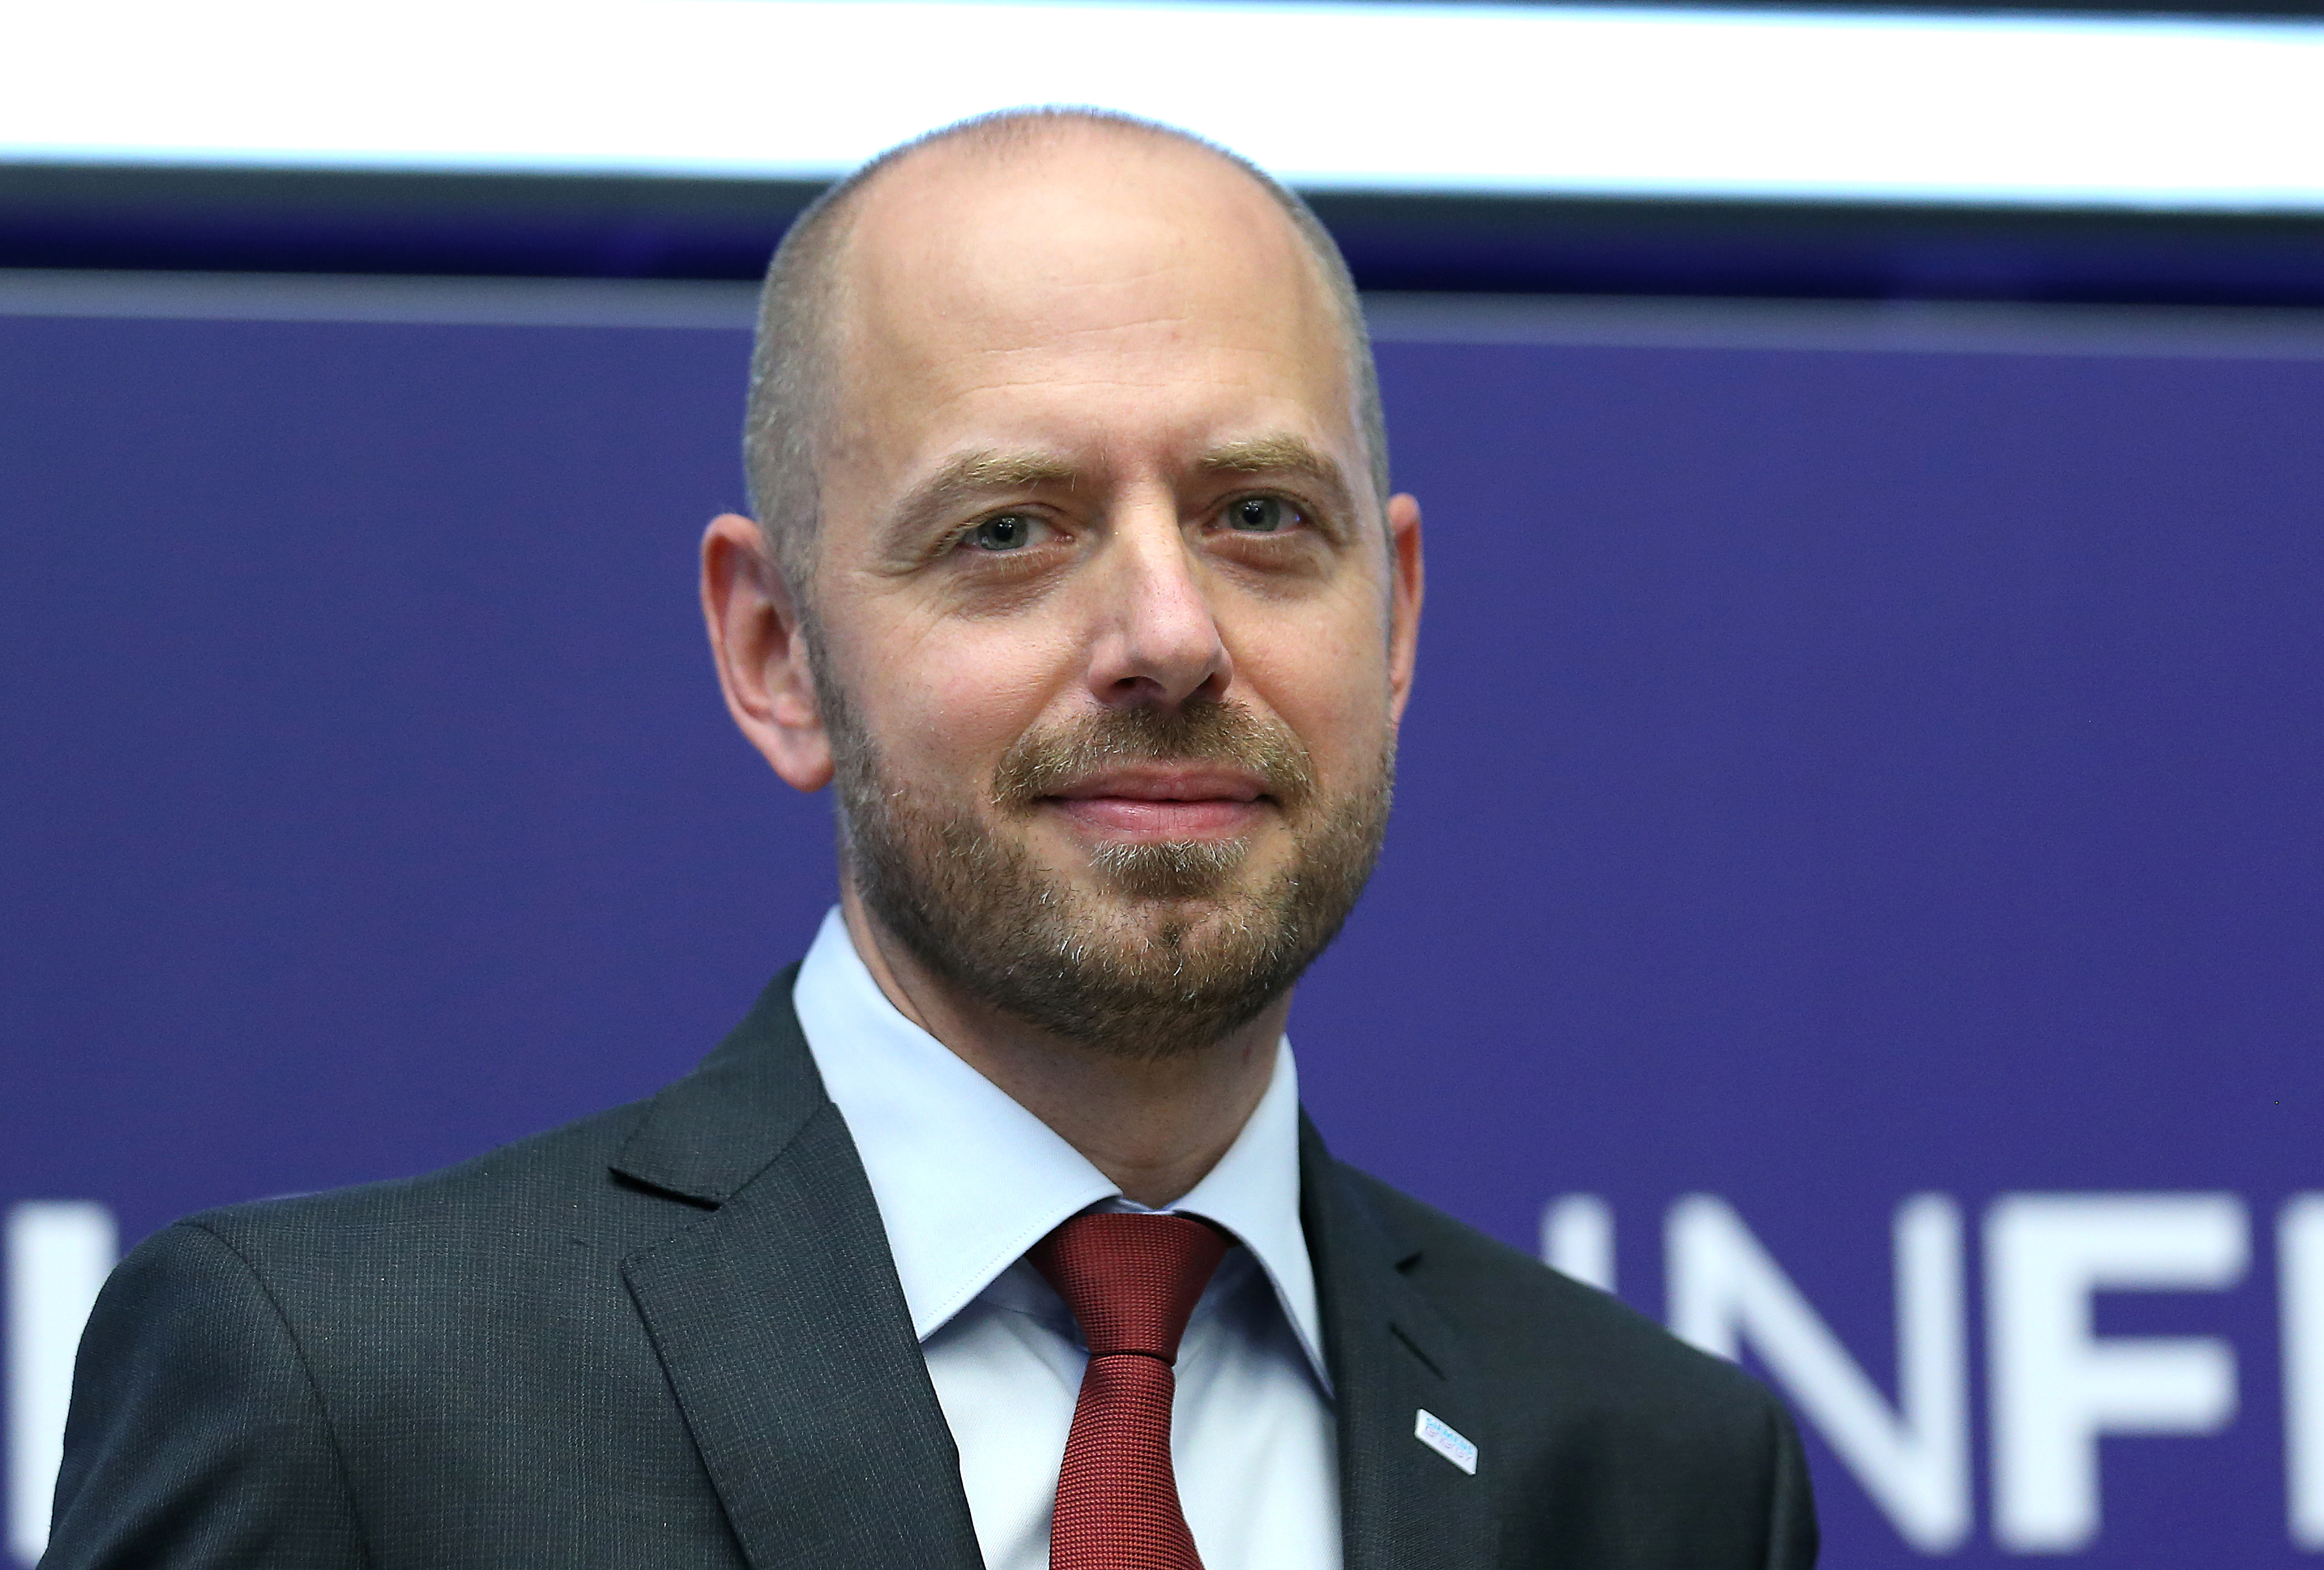 Christian Bruch, Chief Executive Officer of Siemens Energy AG attends Siemens Energy's initial public offering (IPO) at the Frankfurt Stock Exchange in Frankfurt, Germany, September 28, 2020.     REUTERS/Ralph Orlowski